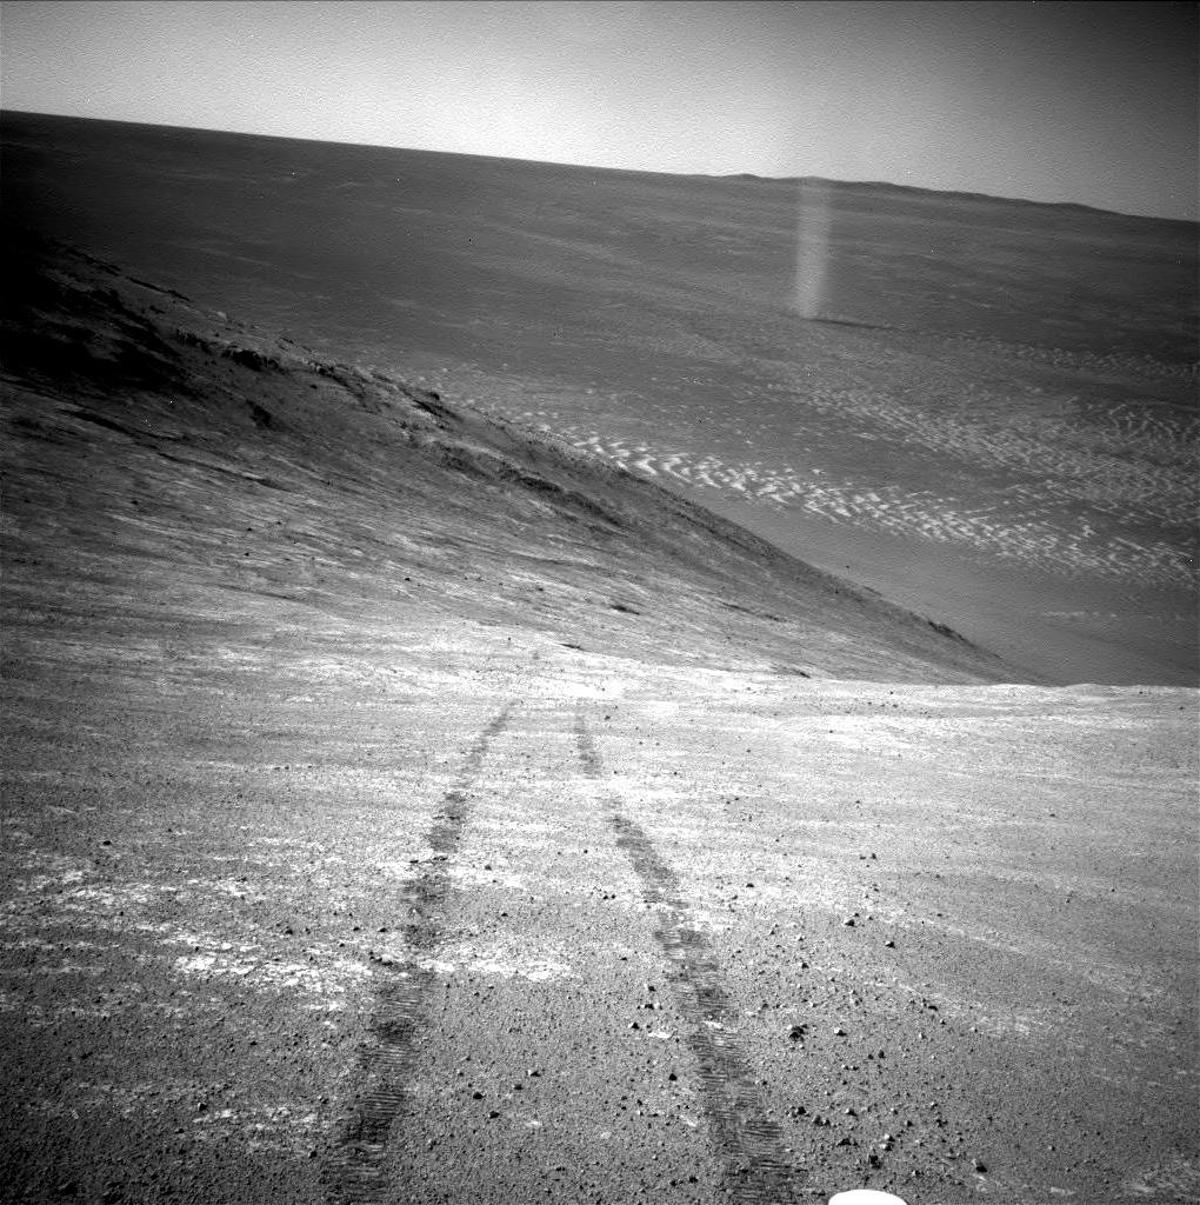 Opportunity's track prints are apparent in the lower image, while the dust devil cuts a ghostly figure in the top right of the shot